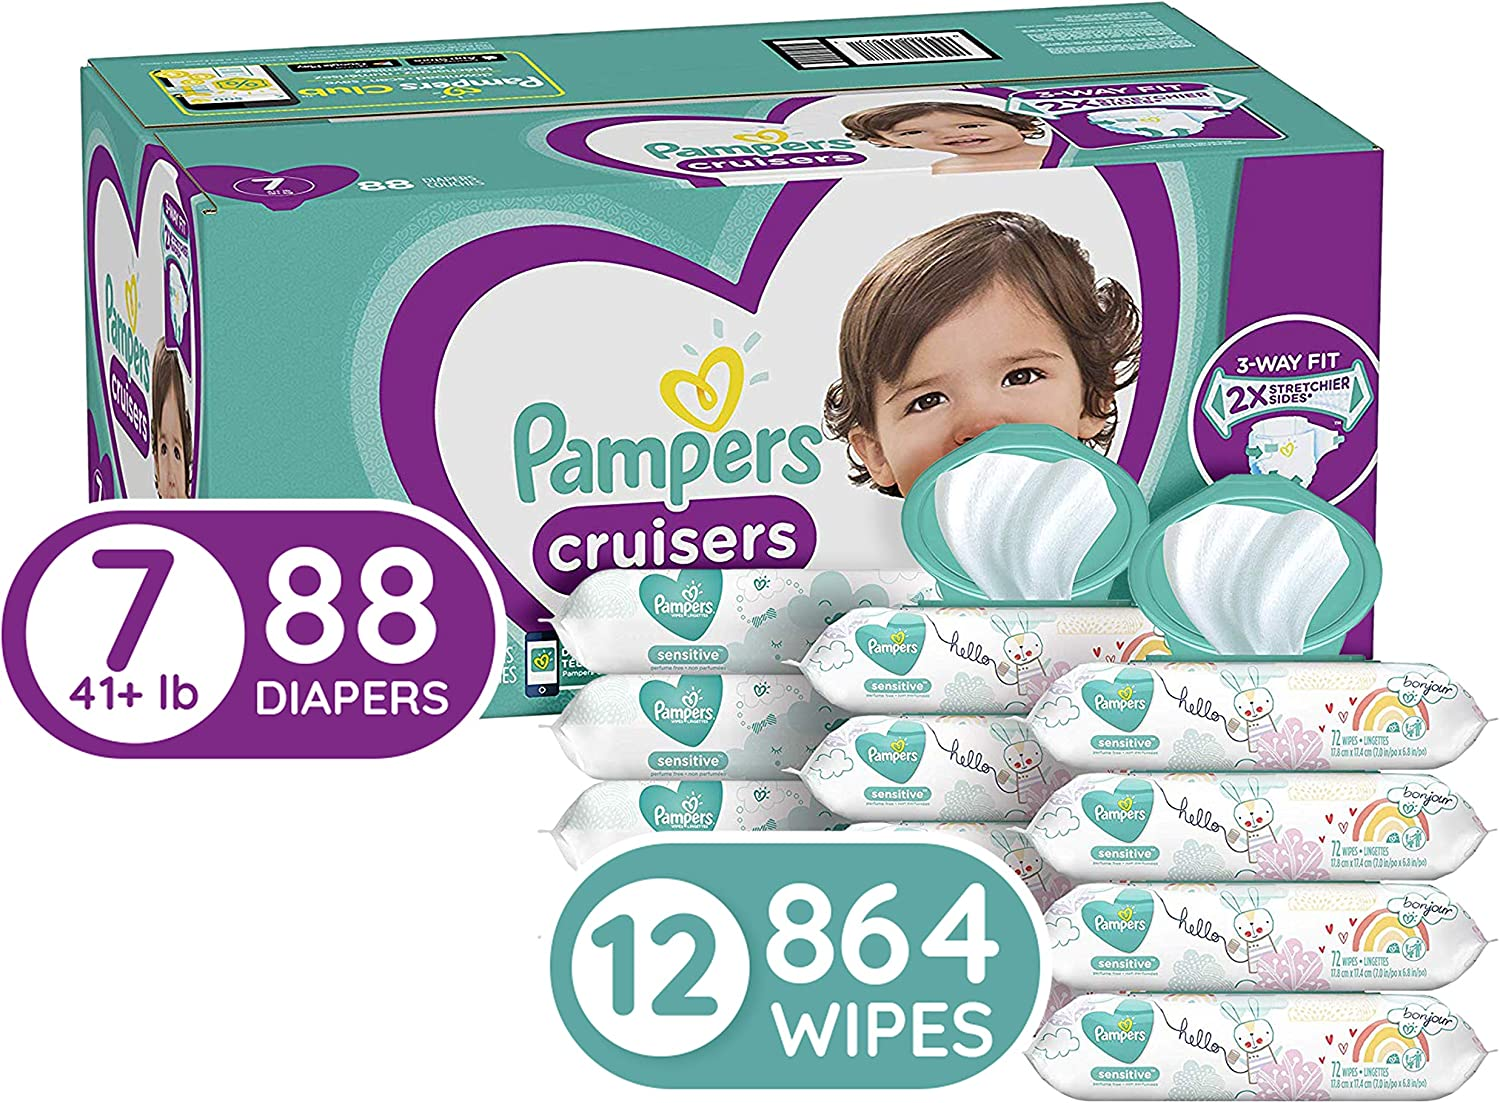 88 Count Pampers Cruisers Disposable Baby Diapers Diapers Size 7